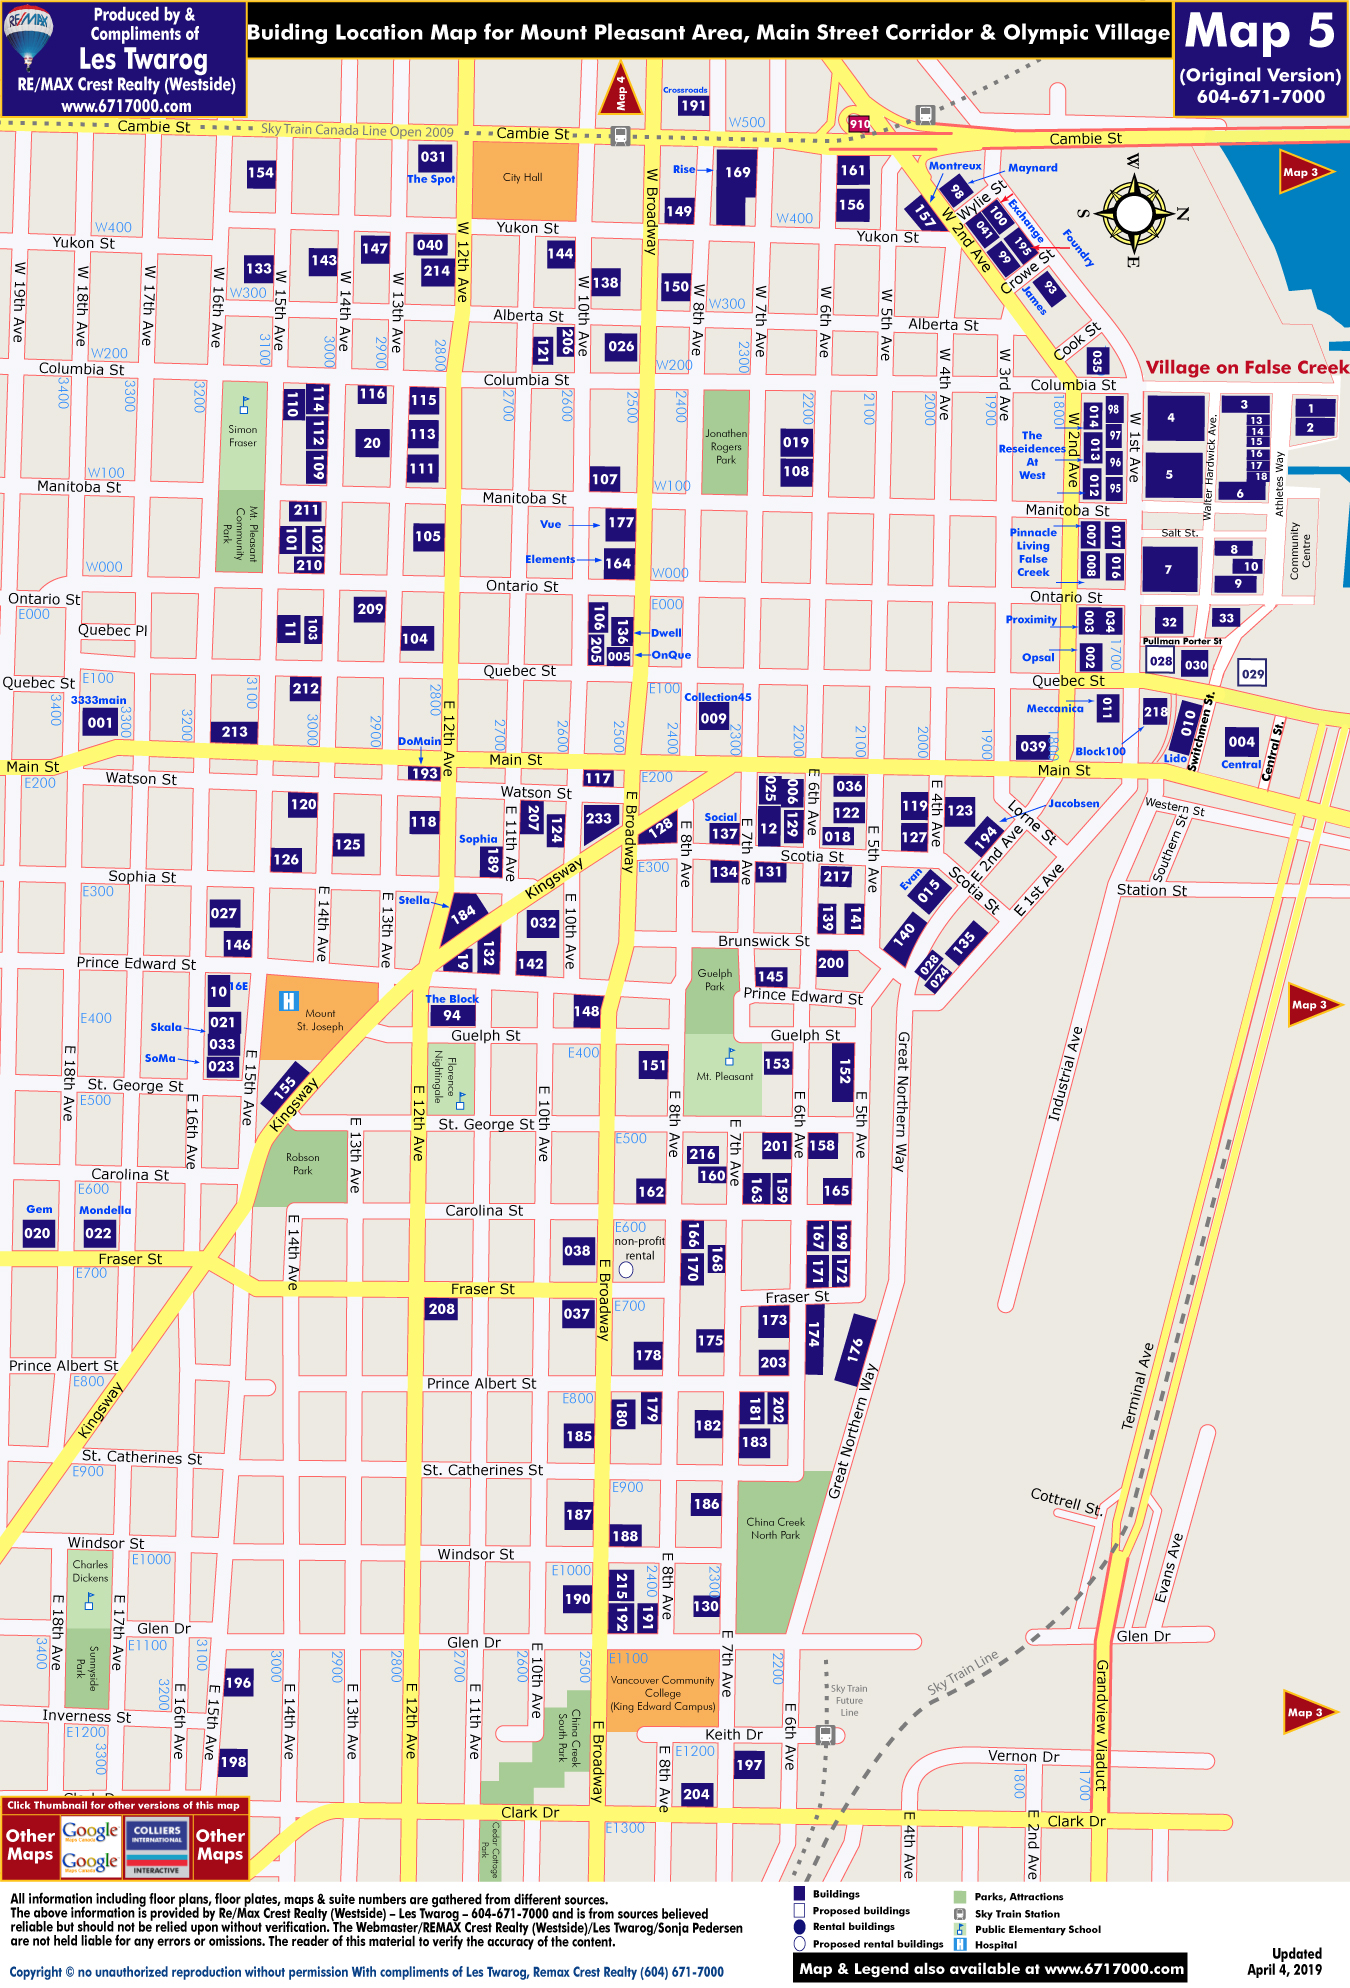 Detailed Interactive Downtown Vancouver Building Location Maps with Individual Building Listings & Sale History Including Rentals for MAP 5 - Mount Pleasant Area